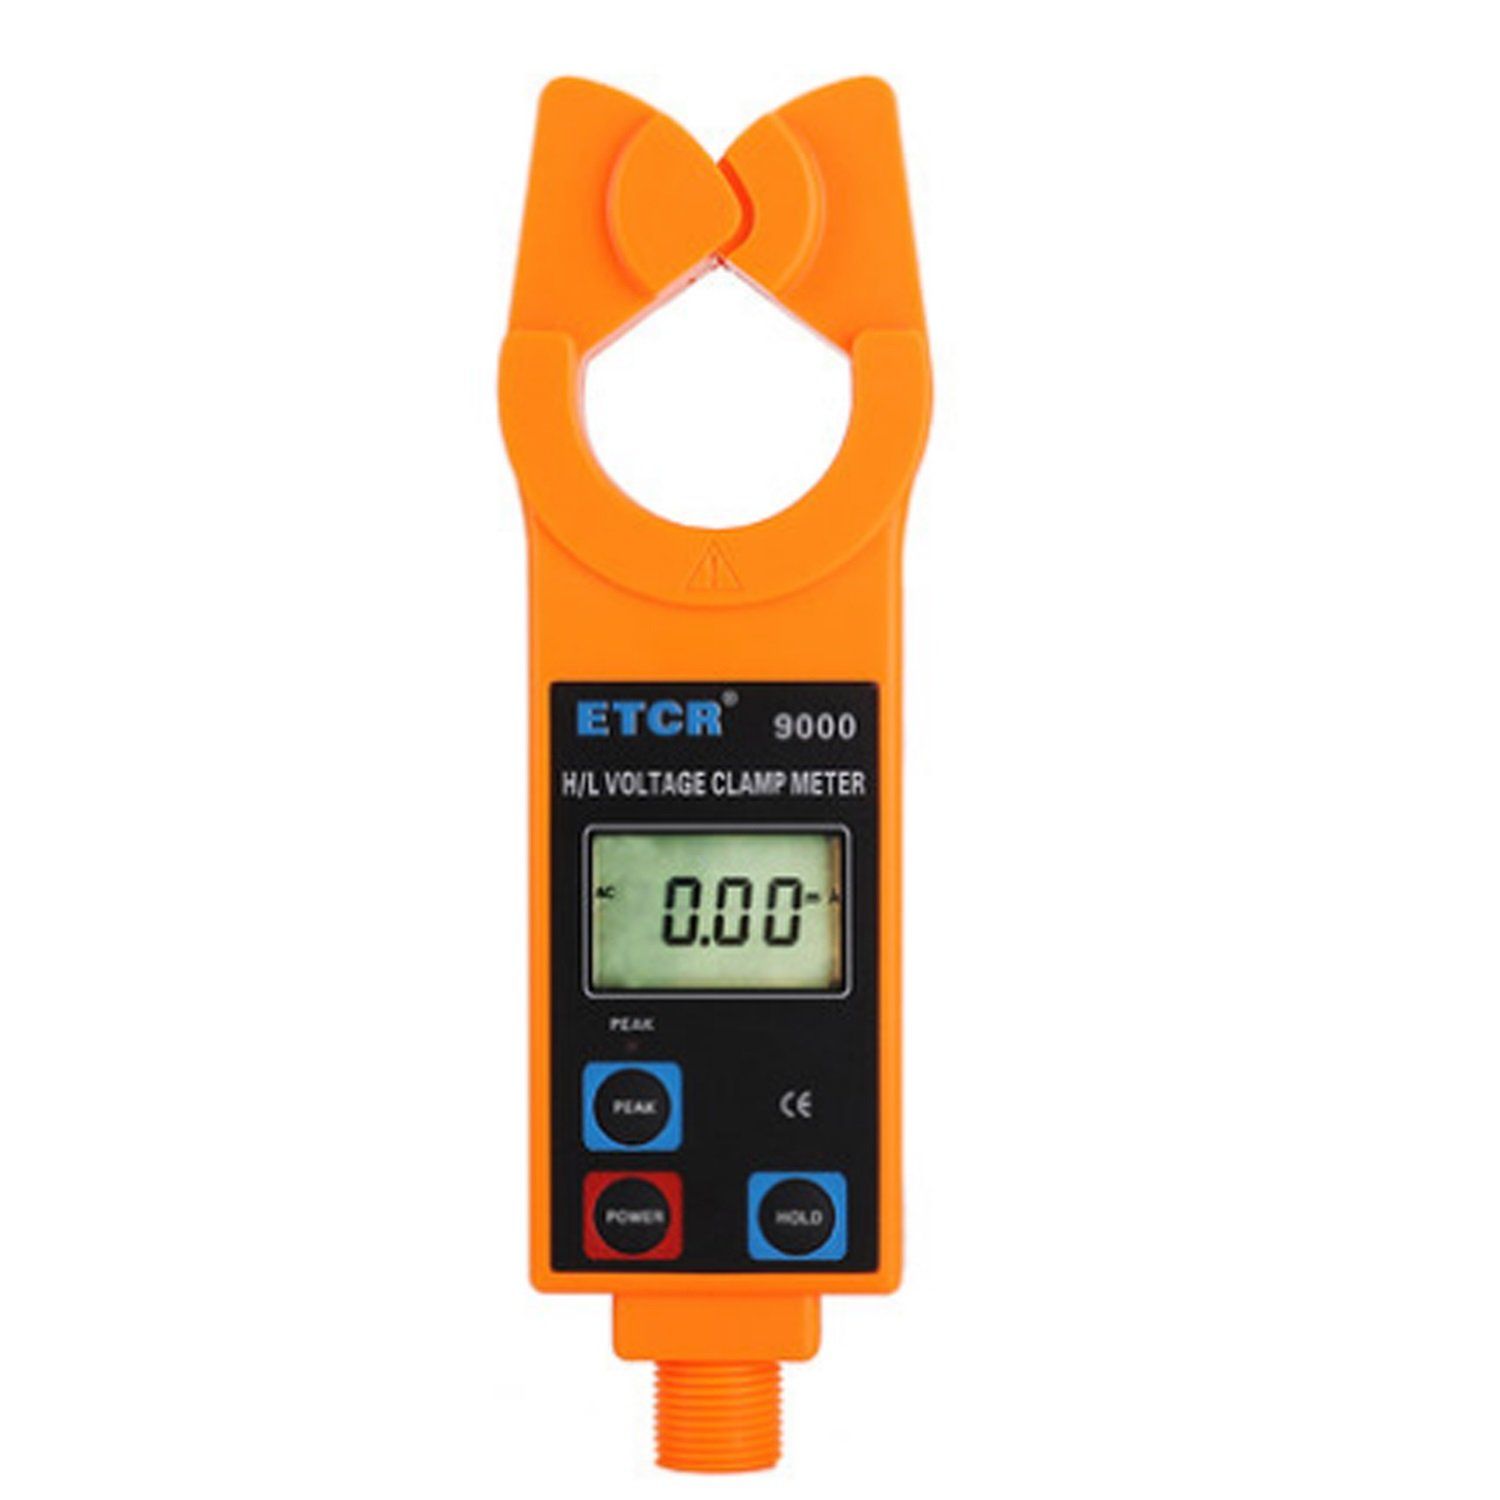 Lanlanmaoyimg Ammeter Online AC Current Monitor High/Low Voltage Digital Ammeter with AC Leakage Current Clamp Meter ETCR9000 Precision Measurement